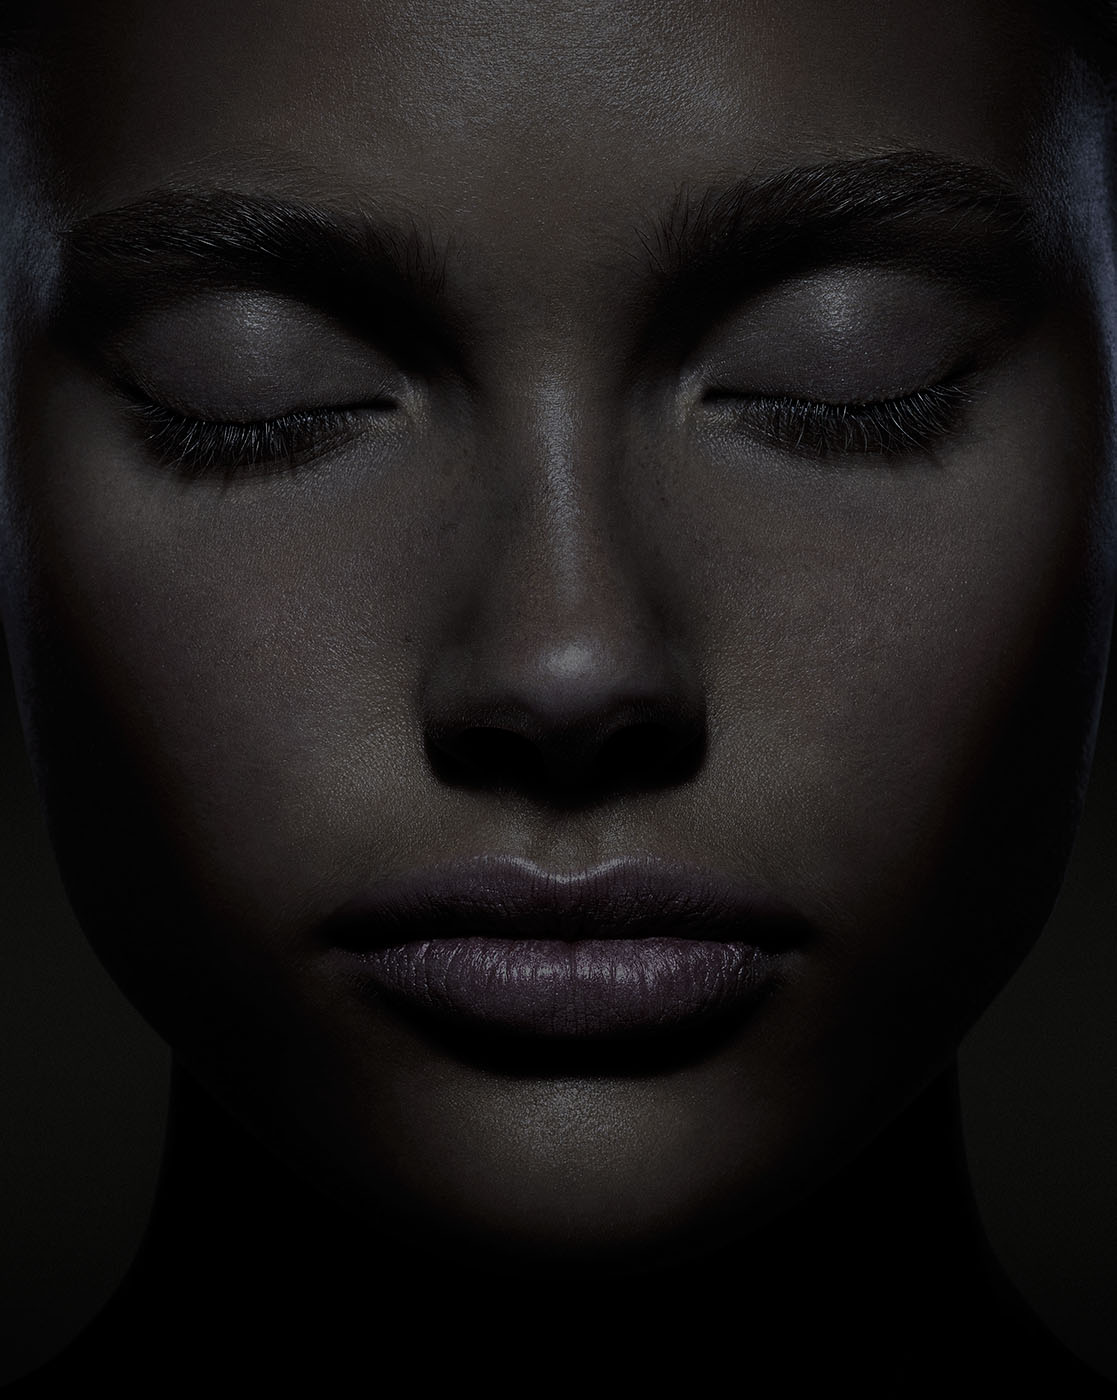 Dark female portrait with closed eyes by photographer Kenneth Rimm